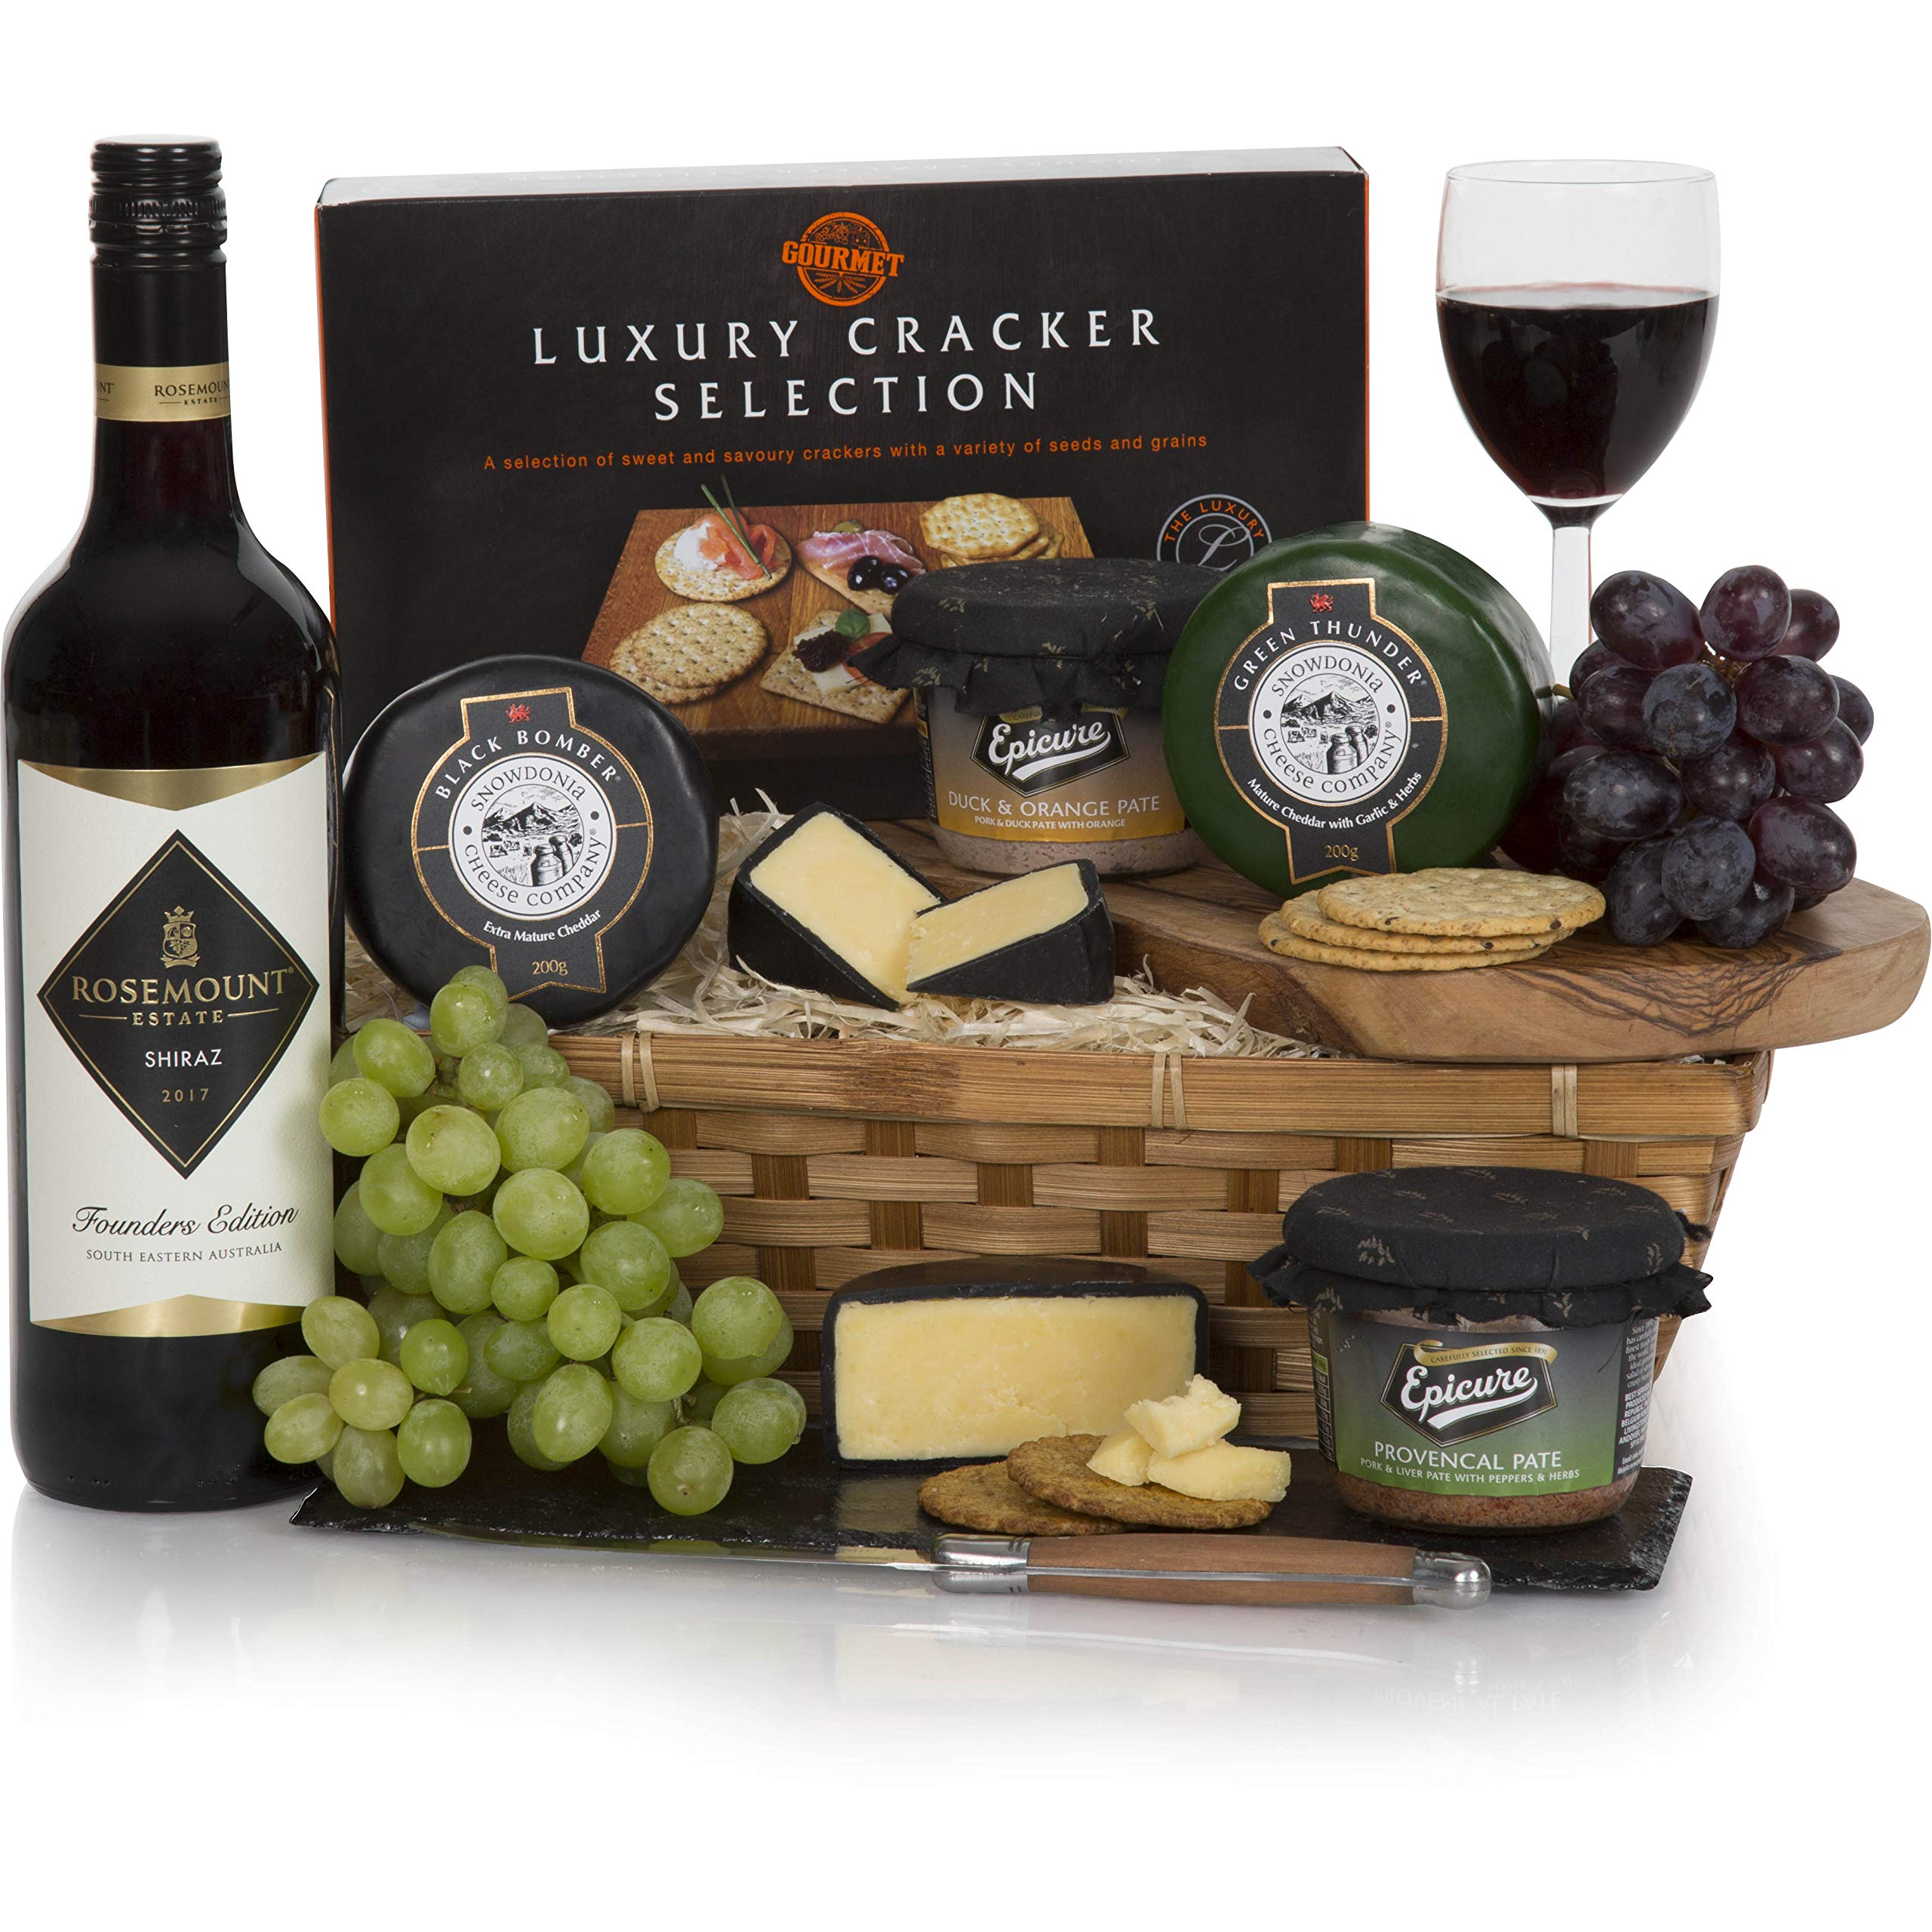 Wine, Cheese and Pate Hamper – Luxury Gift Hampers & Food Gifts Collection – Free UK Delivery